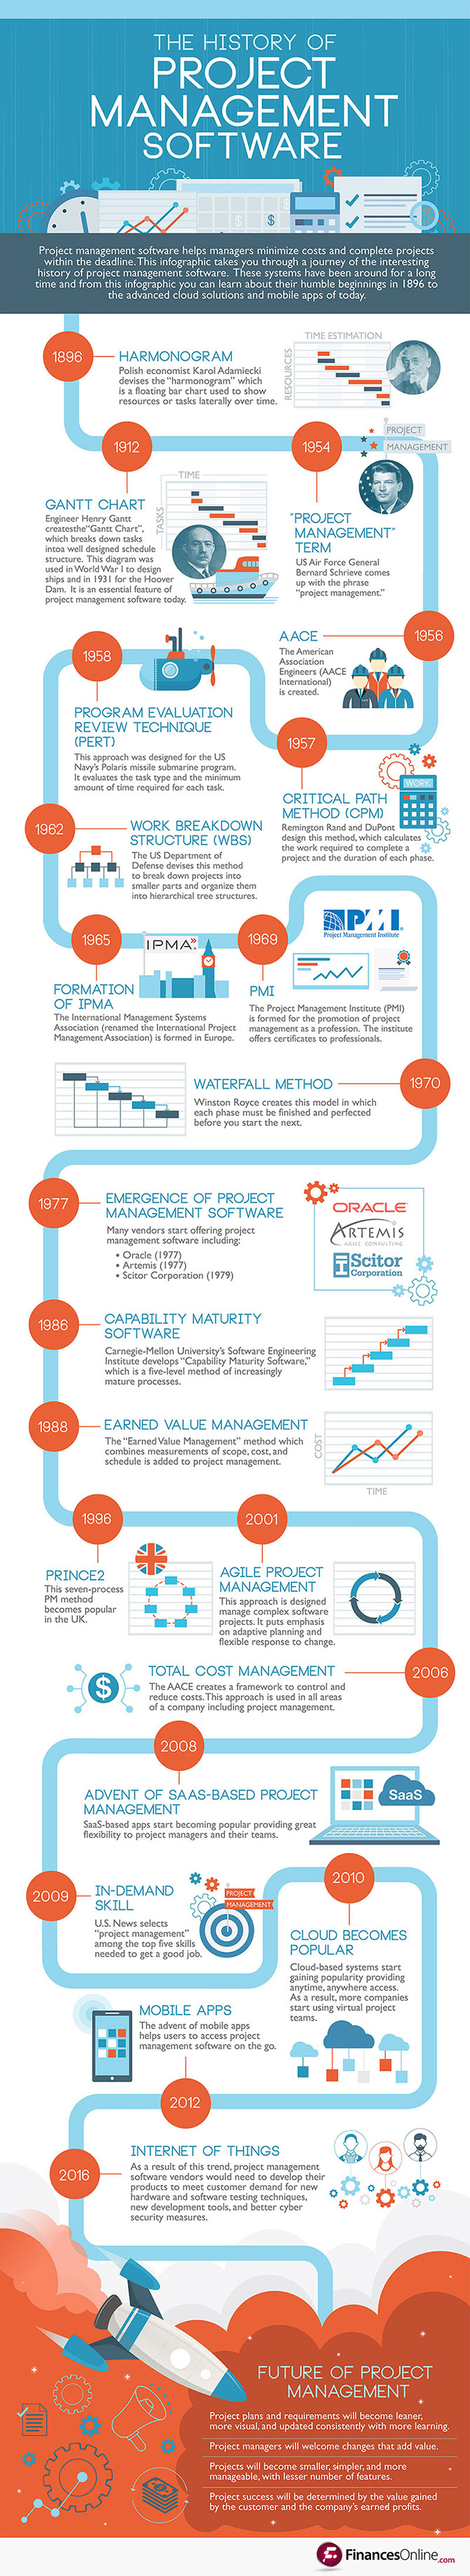 History of Project Management Software_Infographic